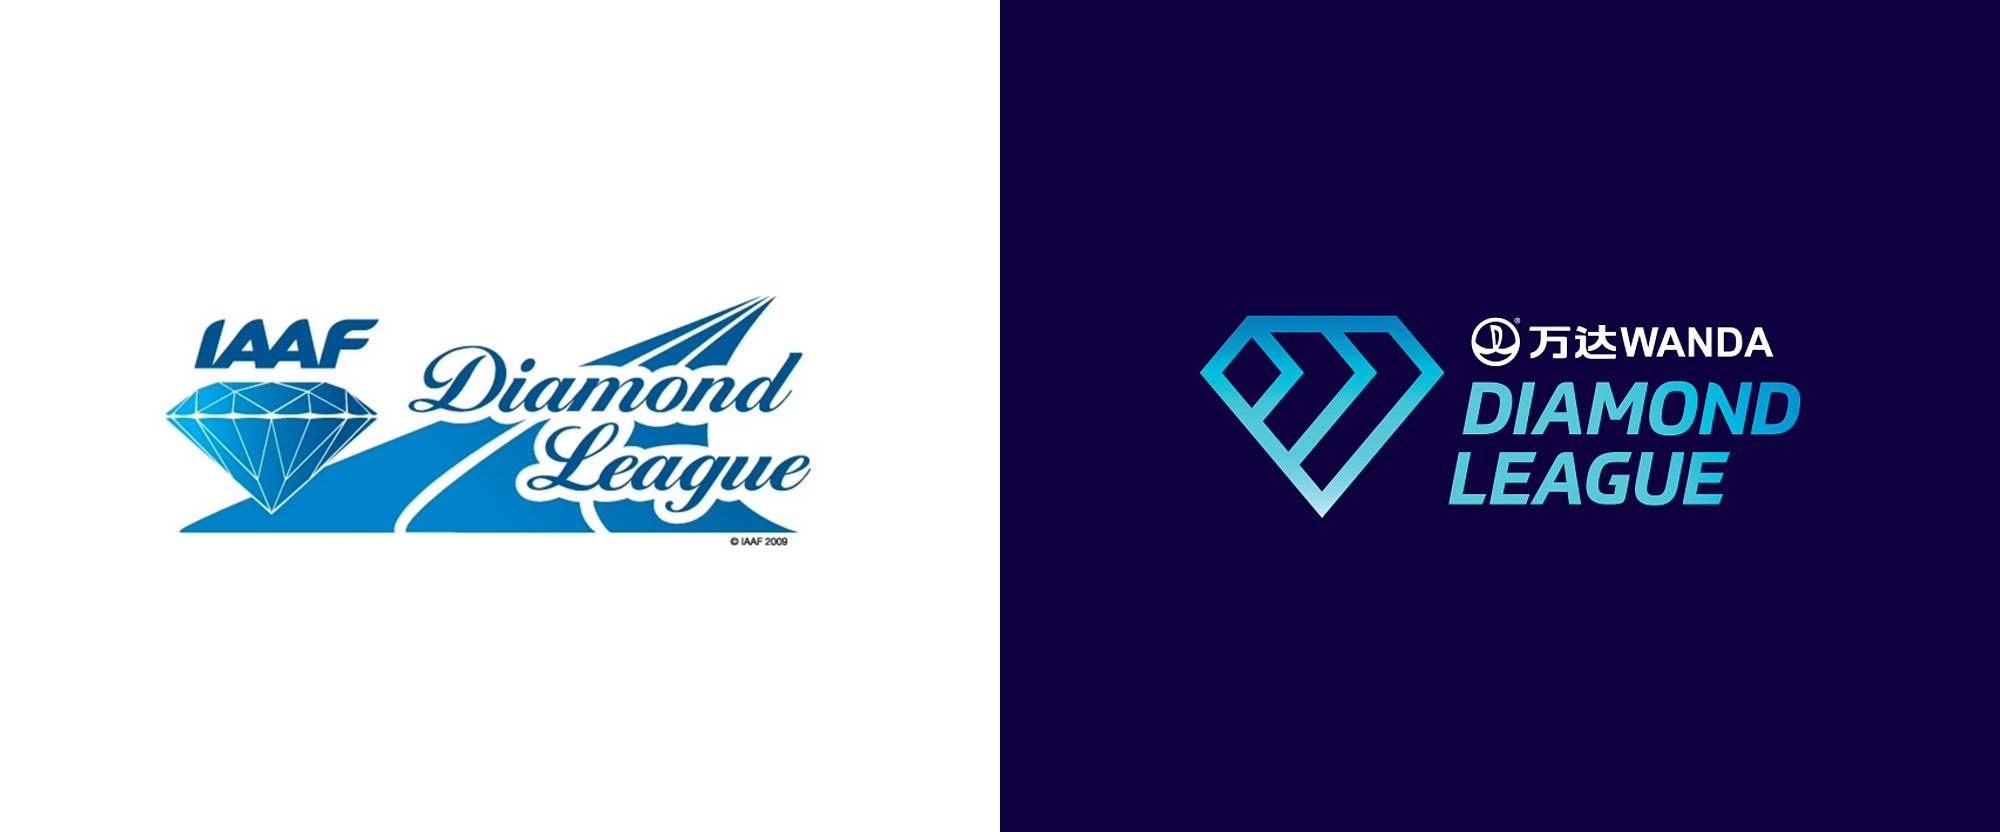 New Logo and Identity for Wanda Diamond League by Works